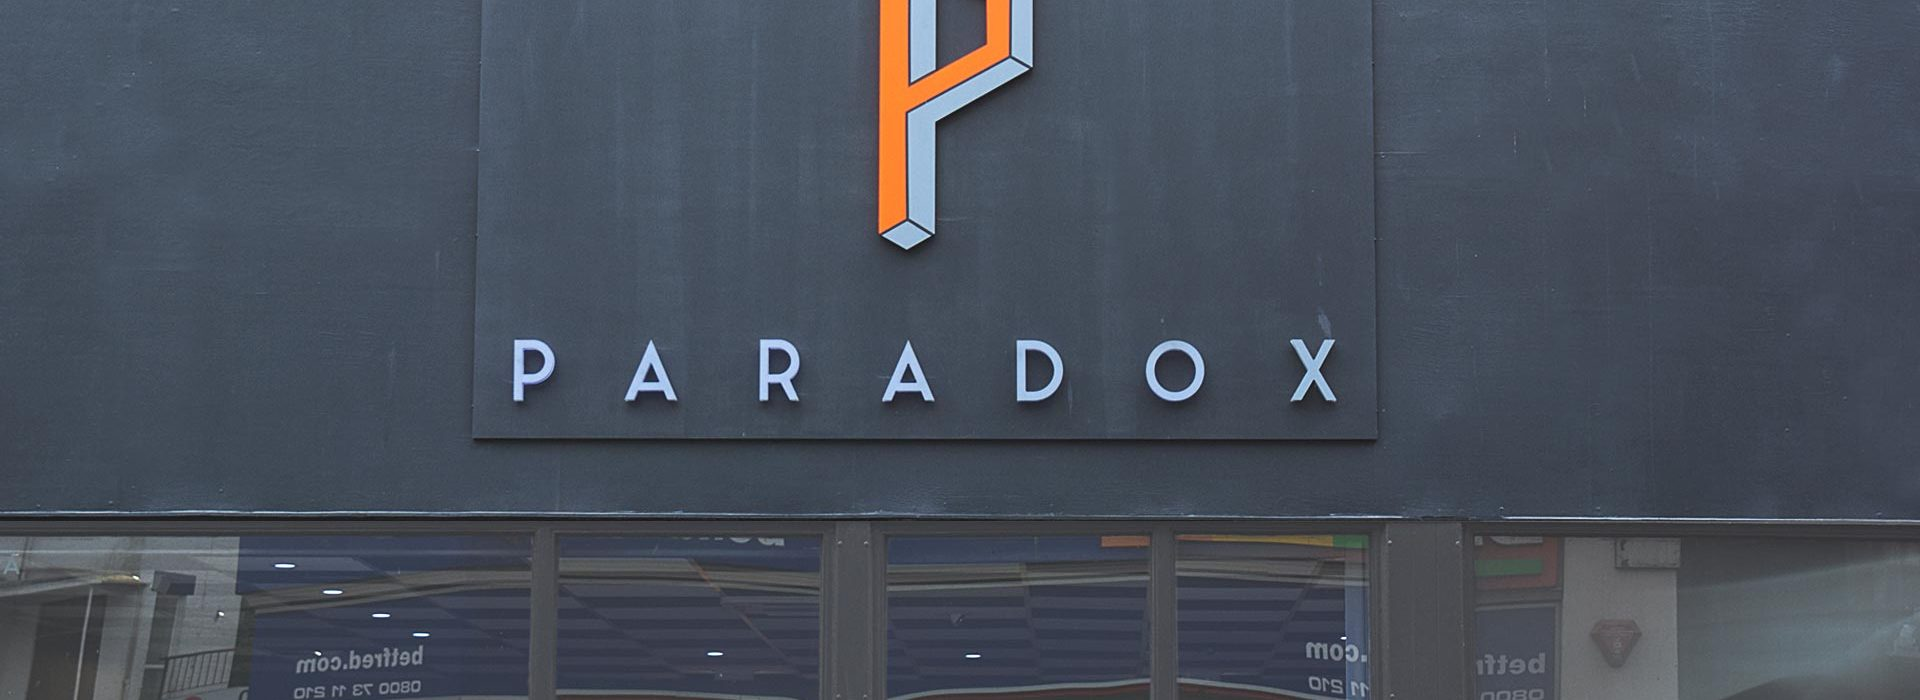 Portfolio - Paradox - Shop Sign